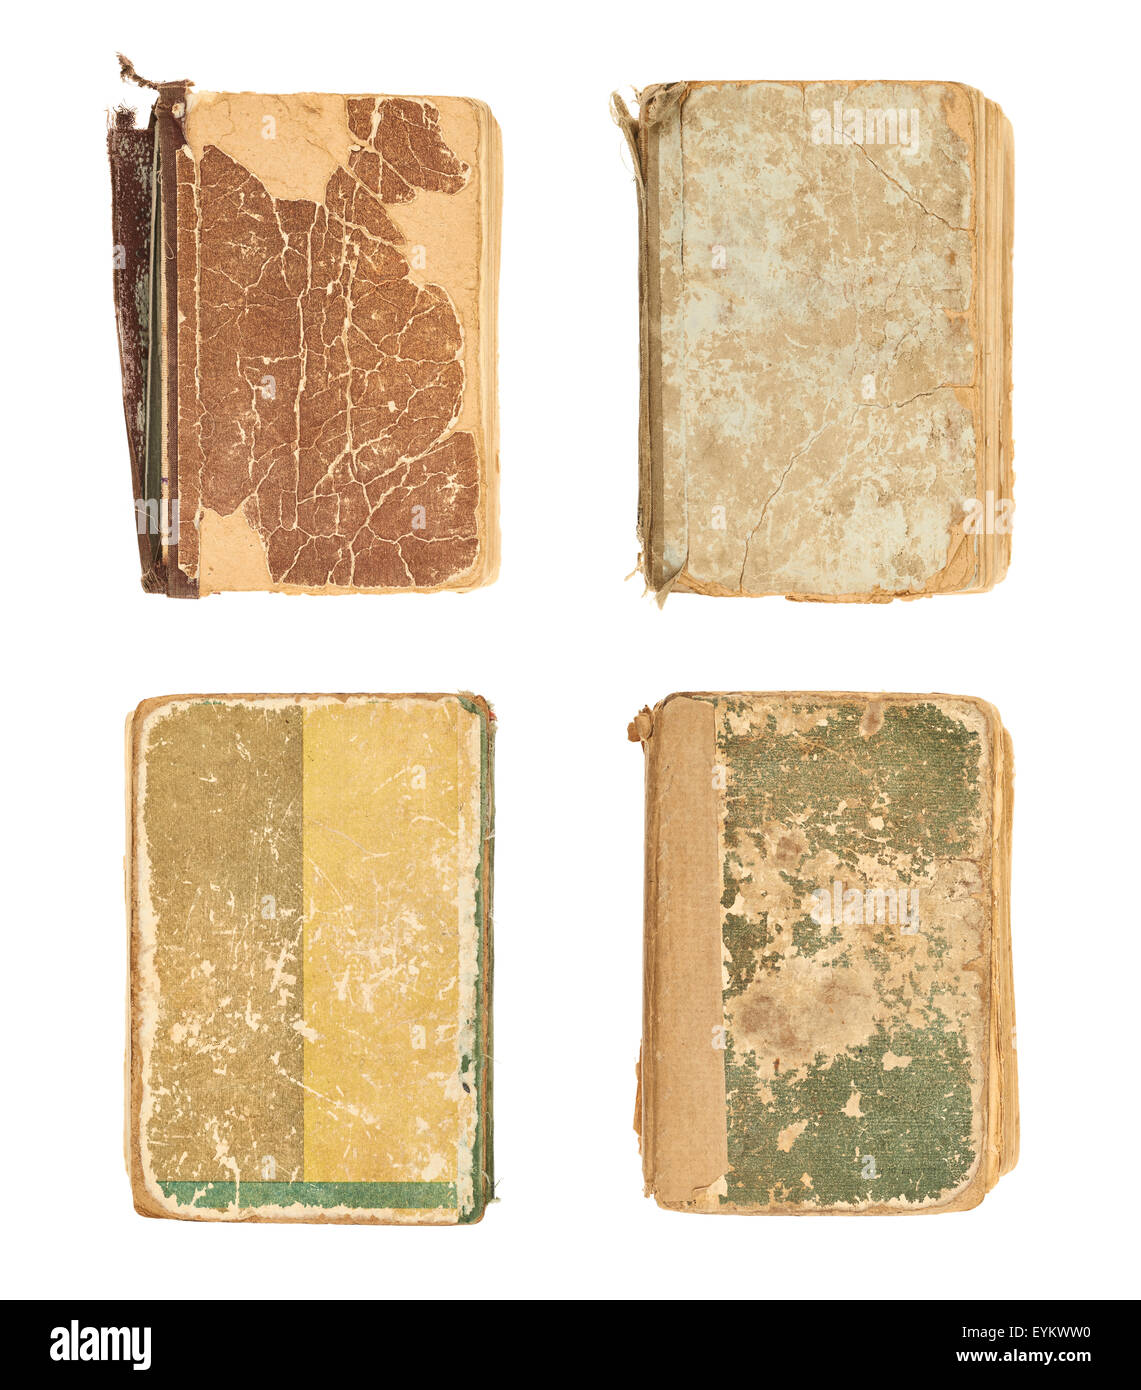 Old decrepit book cover - Stock Image